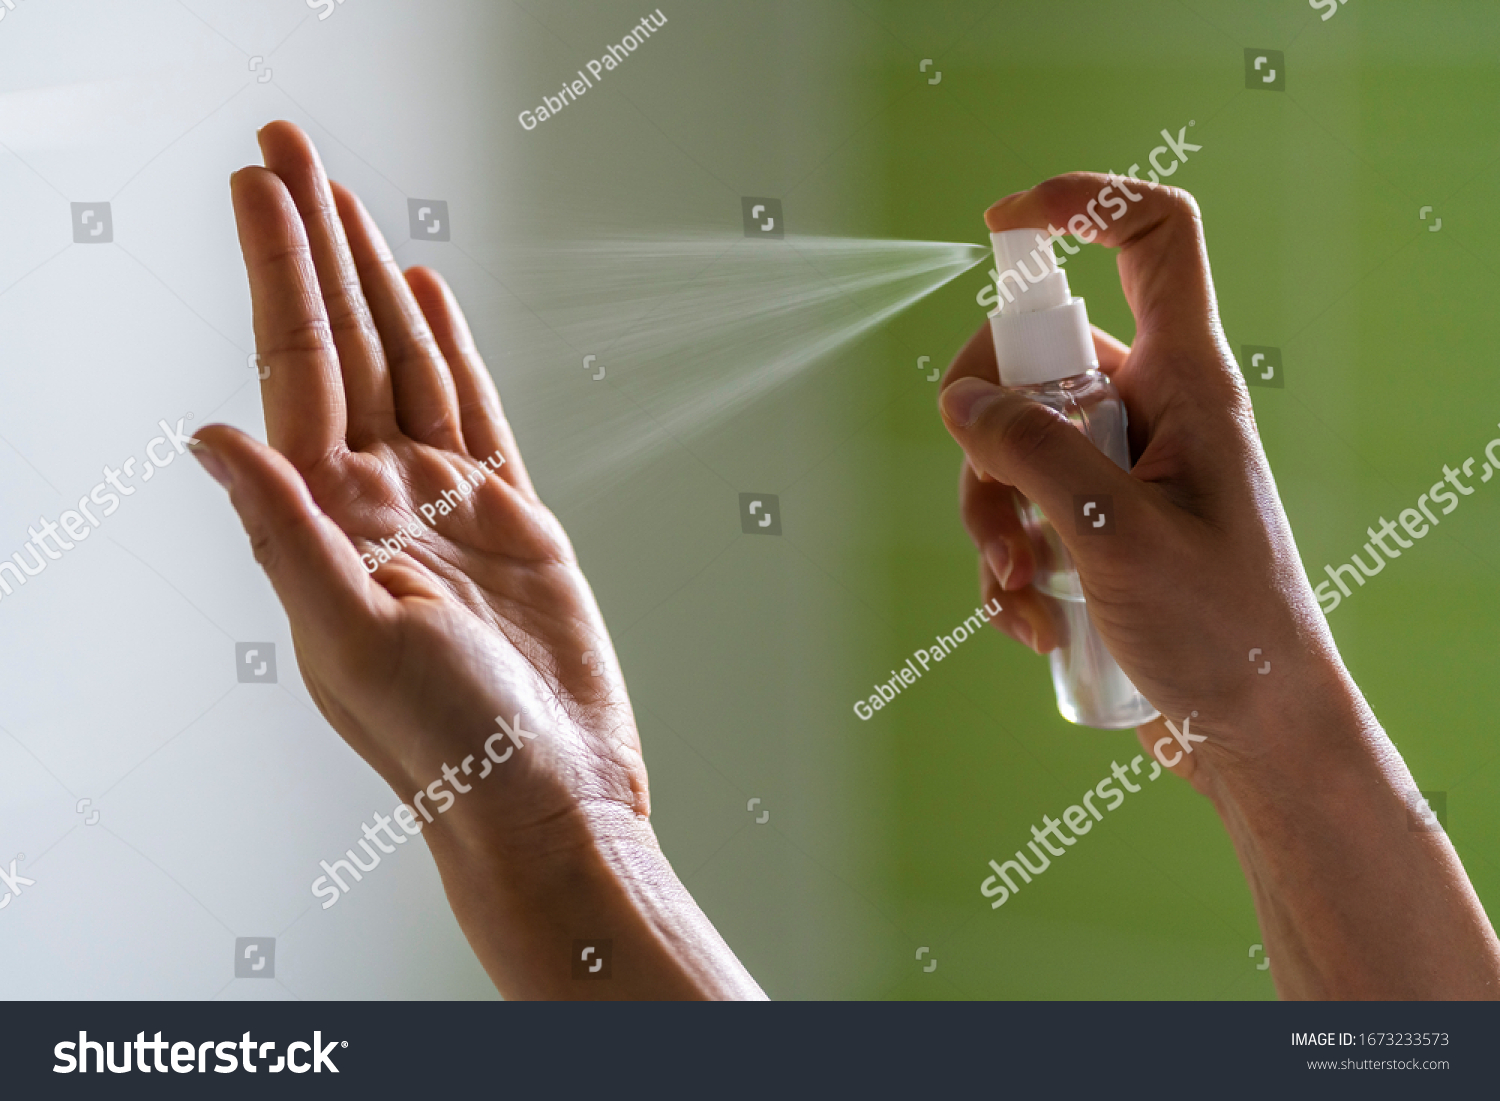 Caucasian woman wipes her hands with an alcohol-based hand-washing spray as a preventive hygiene measure against coronavirus ( Sars-CoV-2, Covid-19) infection. Antibacterial hand sanitizer gel. #1673233573